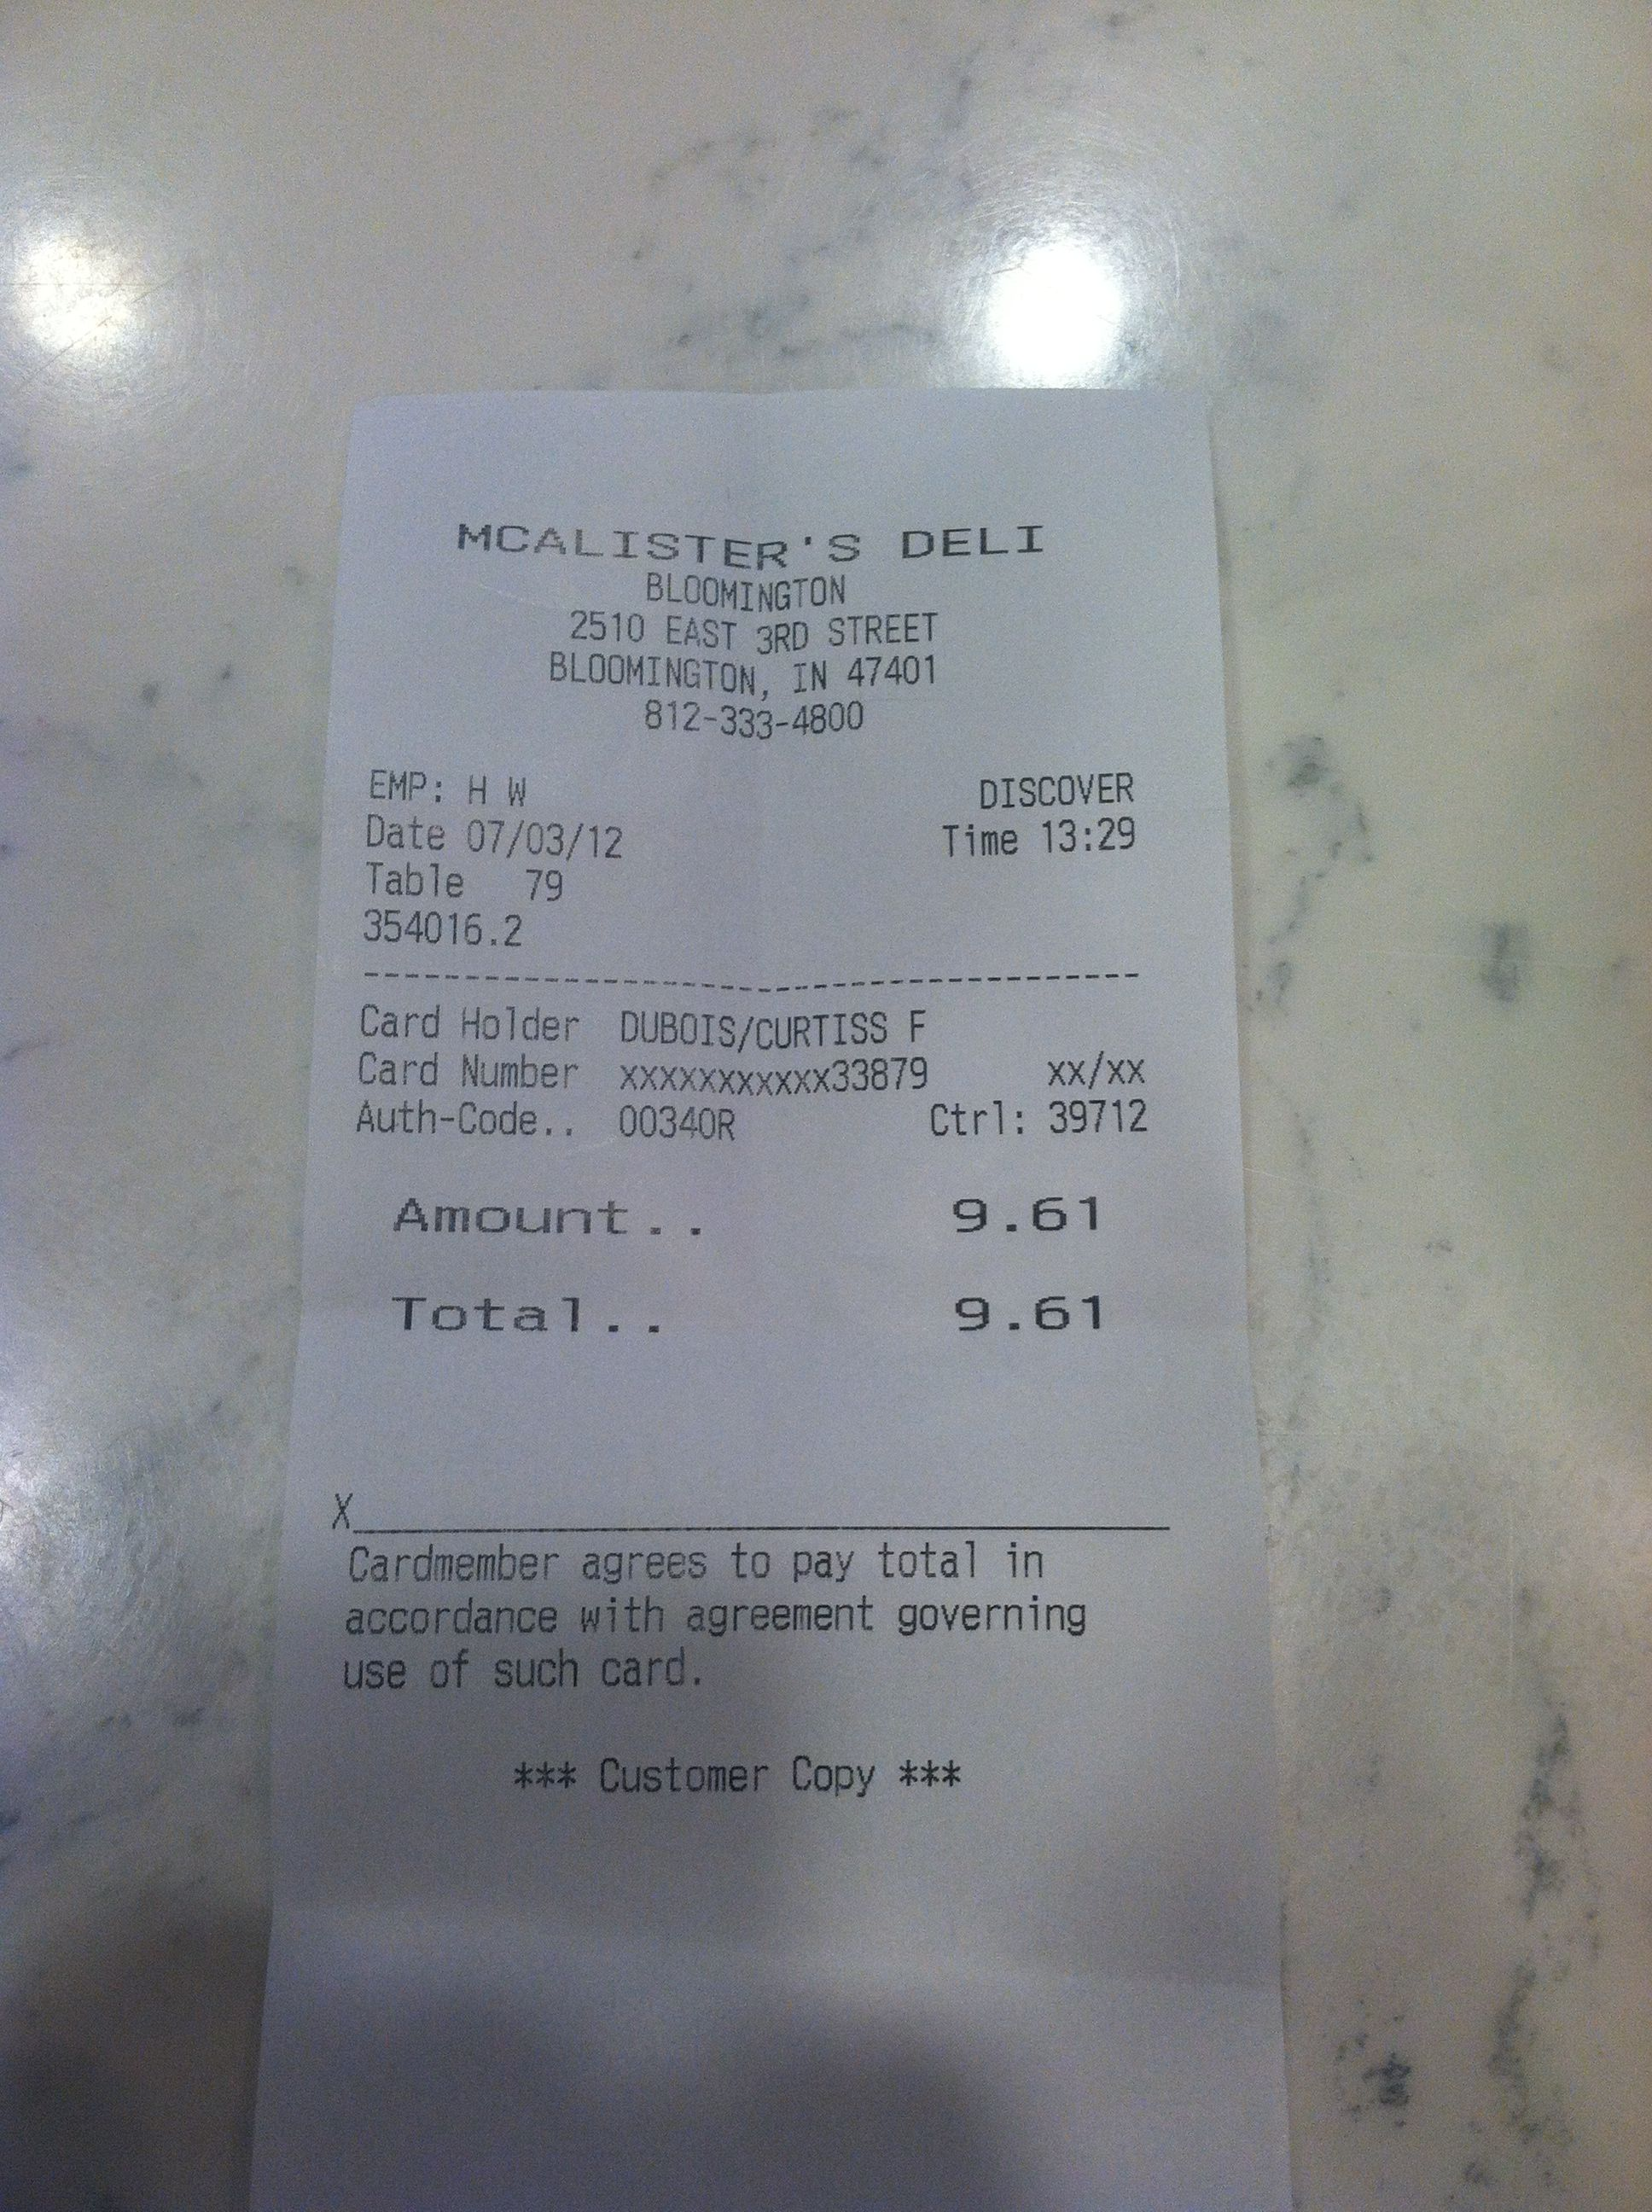 Dataveillance credit card receipt from mcalisters cd dataveillance credit card receipt from mcalisters cd reheart Images